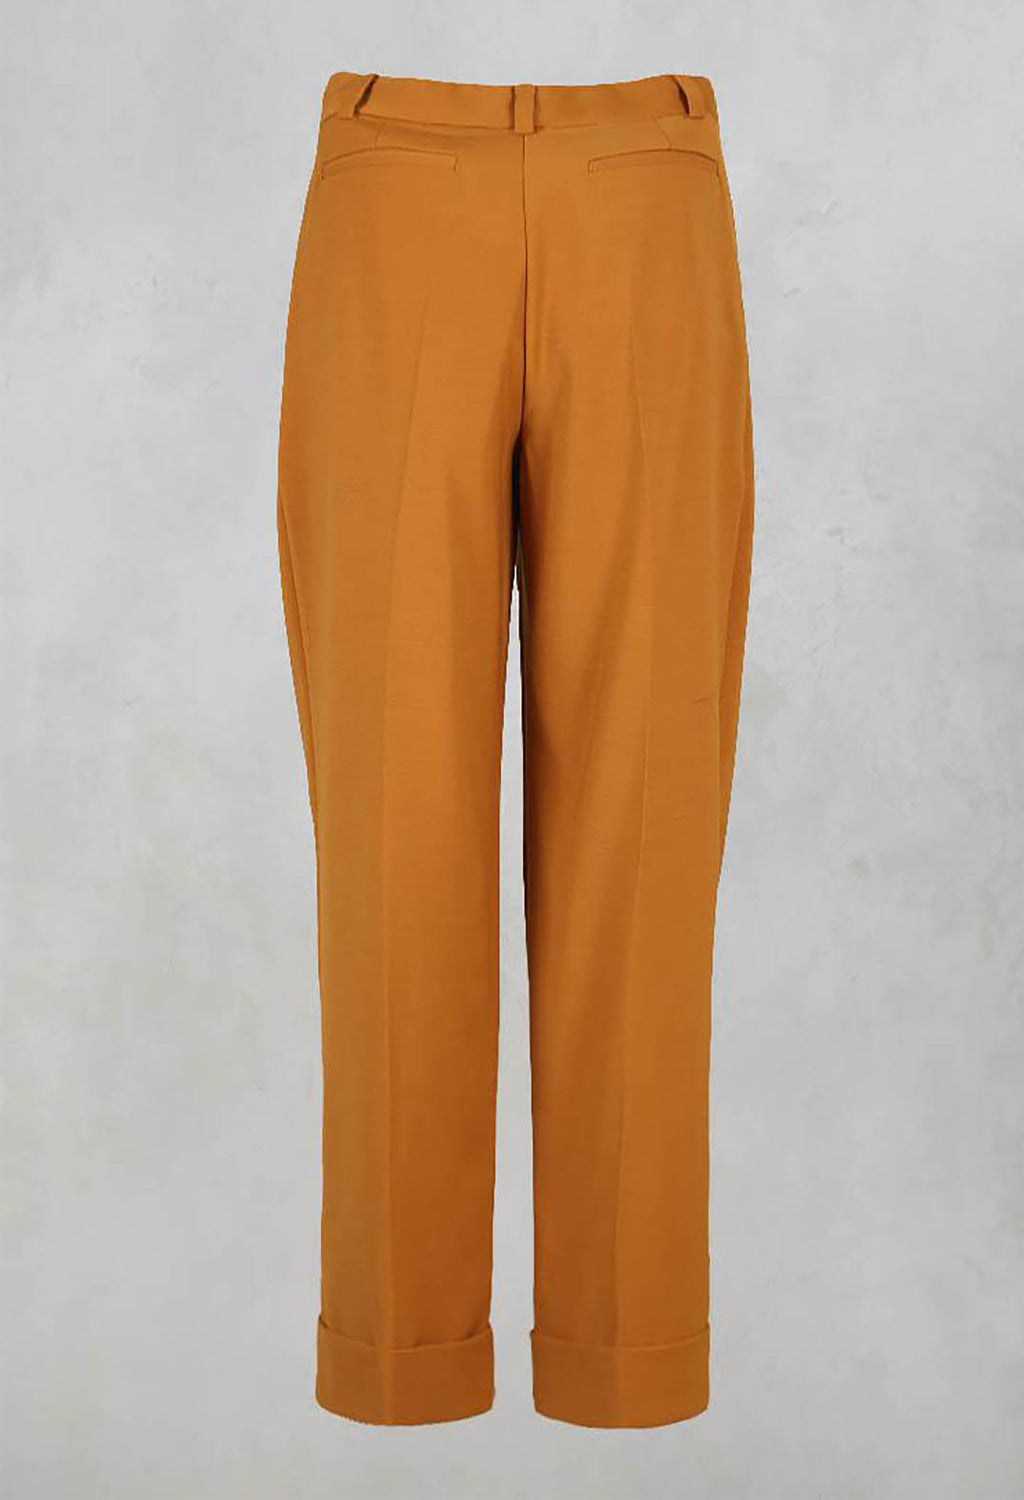 Pegged Trousers in Amber